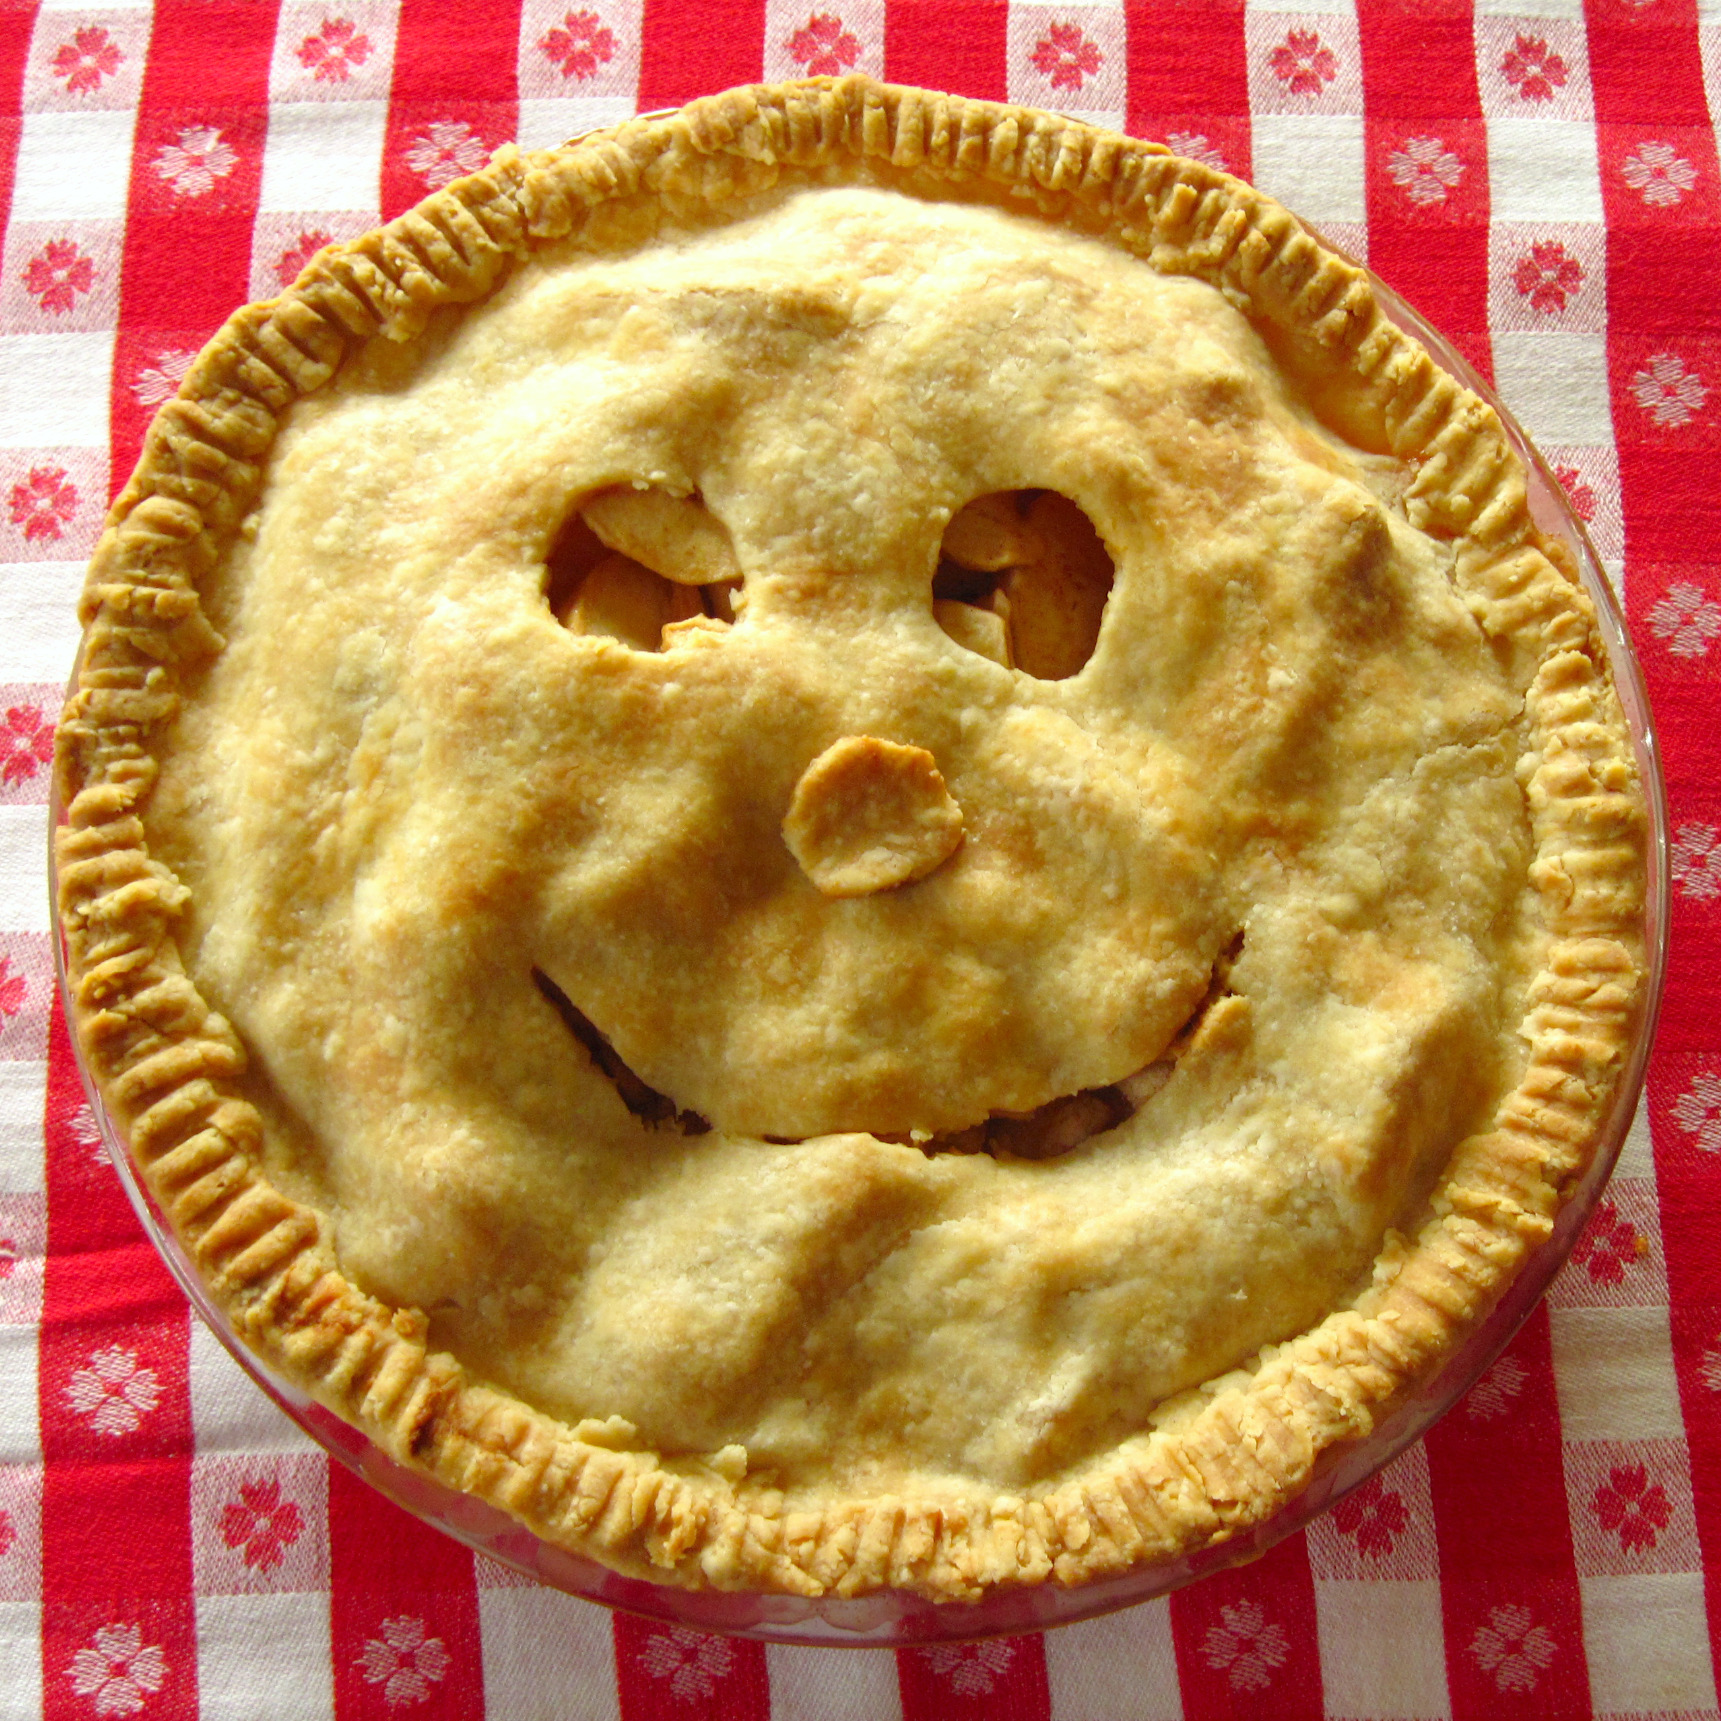 baked apple pie 2.JPG